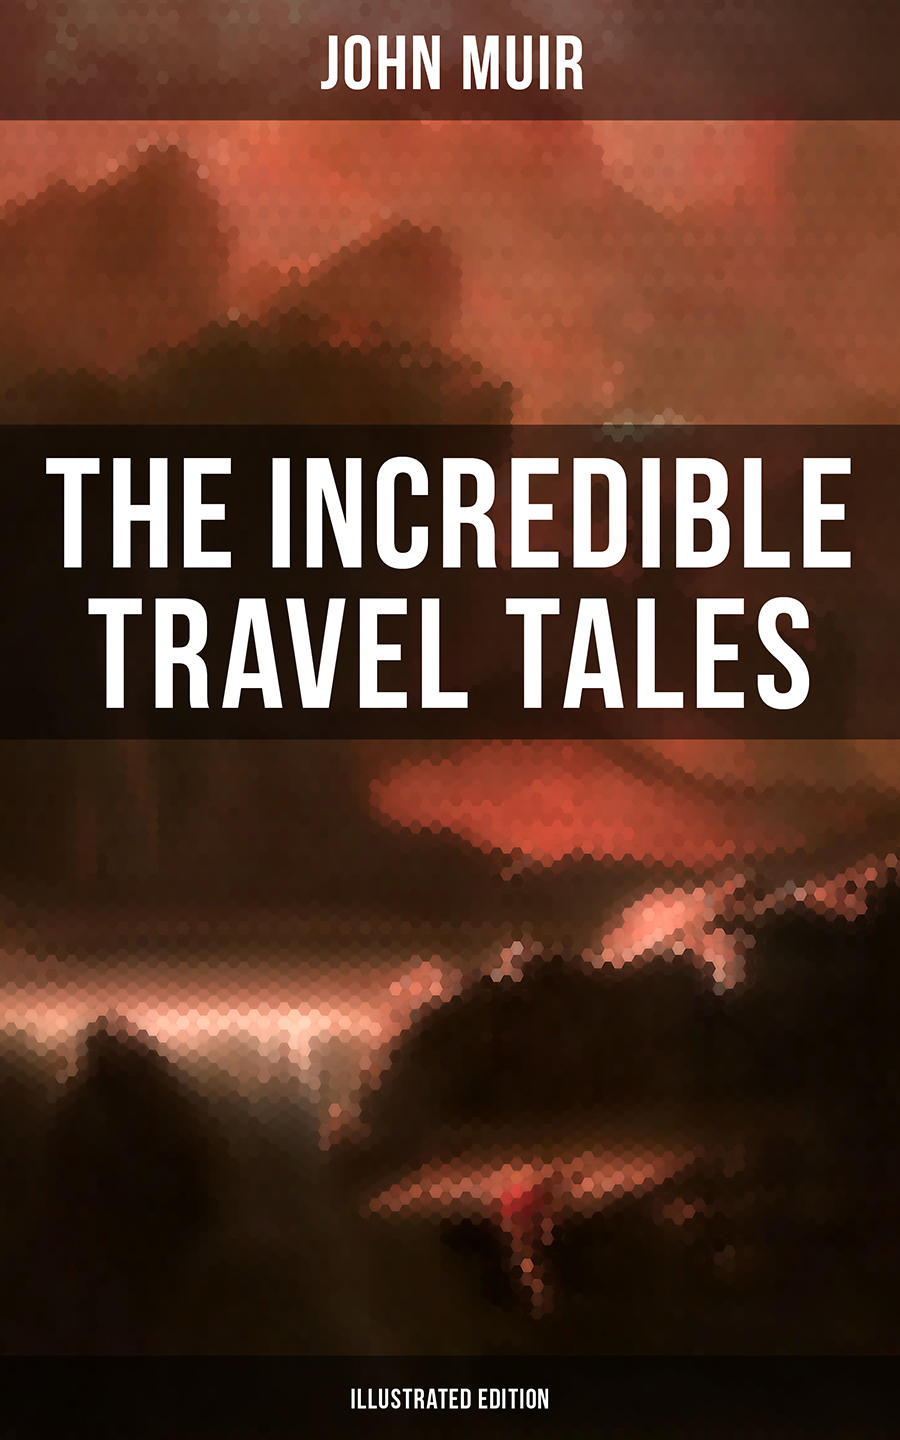 John Muir The Incredible Travel Tales of John Muir (Illustrated Edition) john row the historie of the kirk of scotland icelandic edition